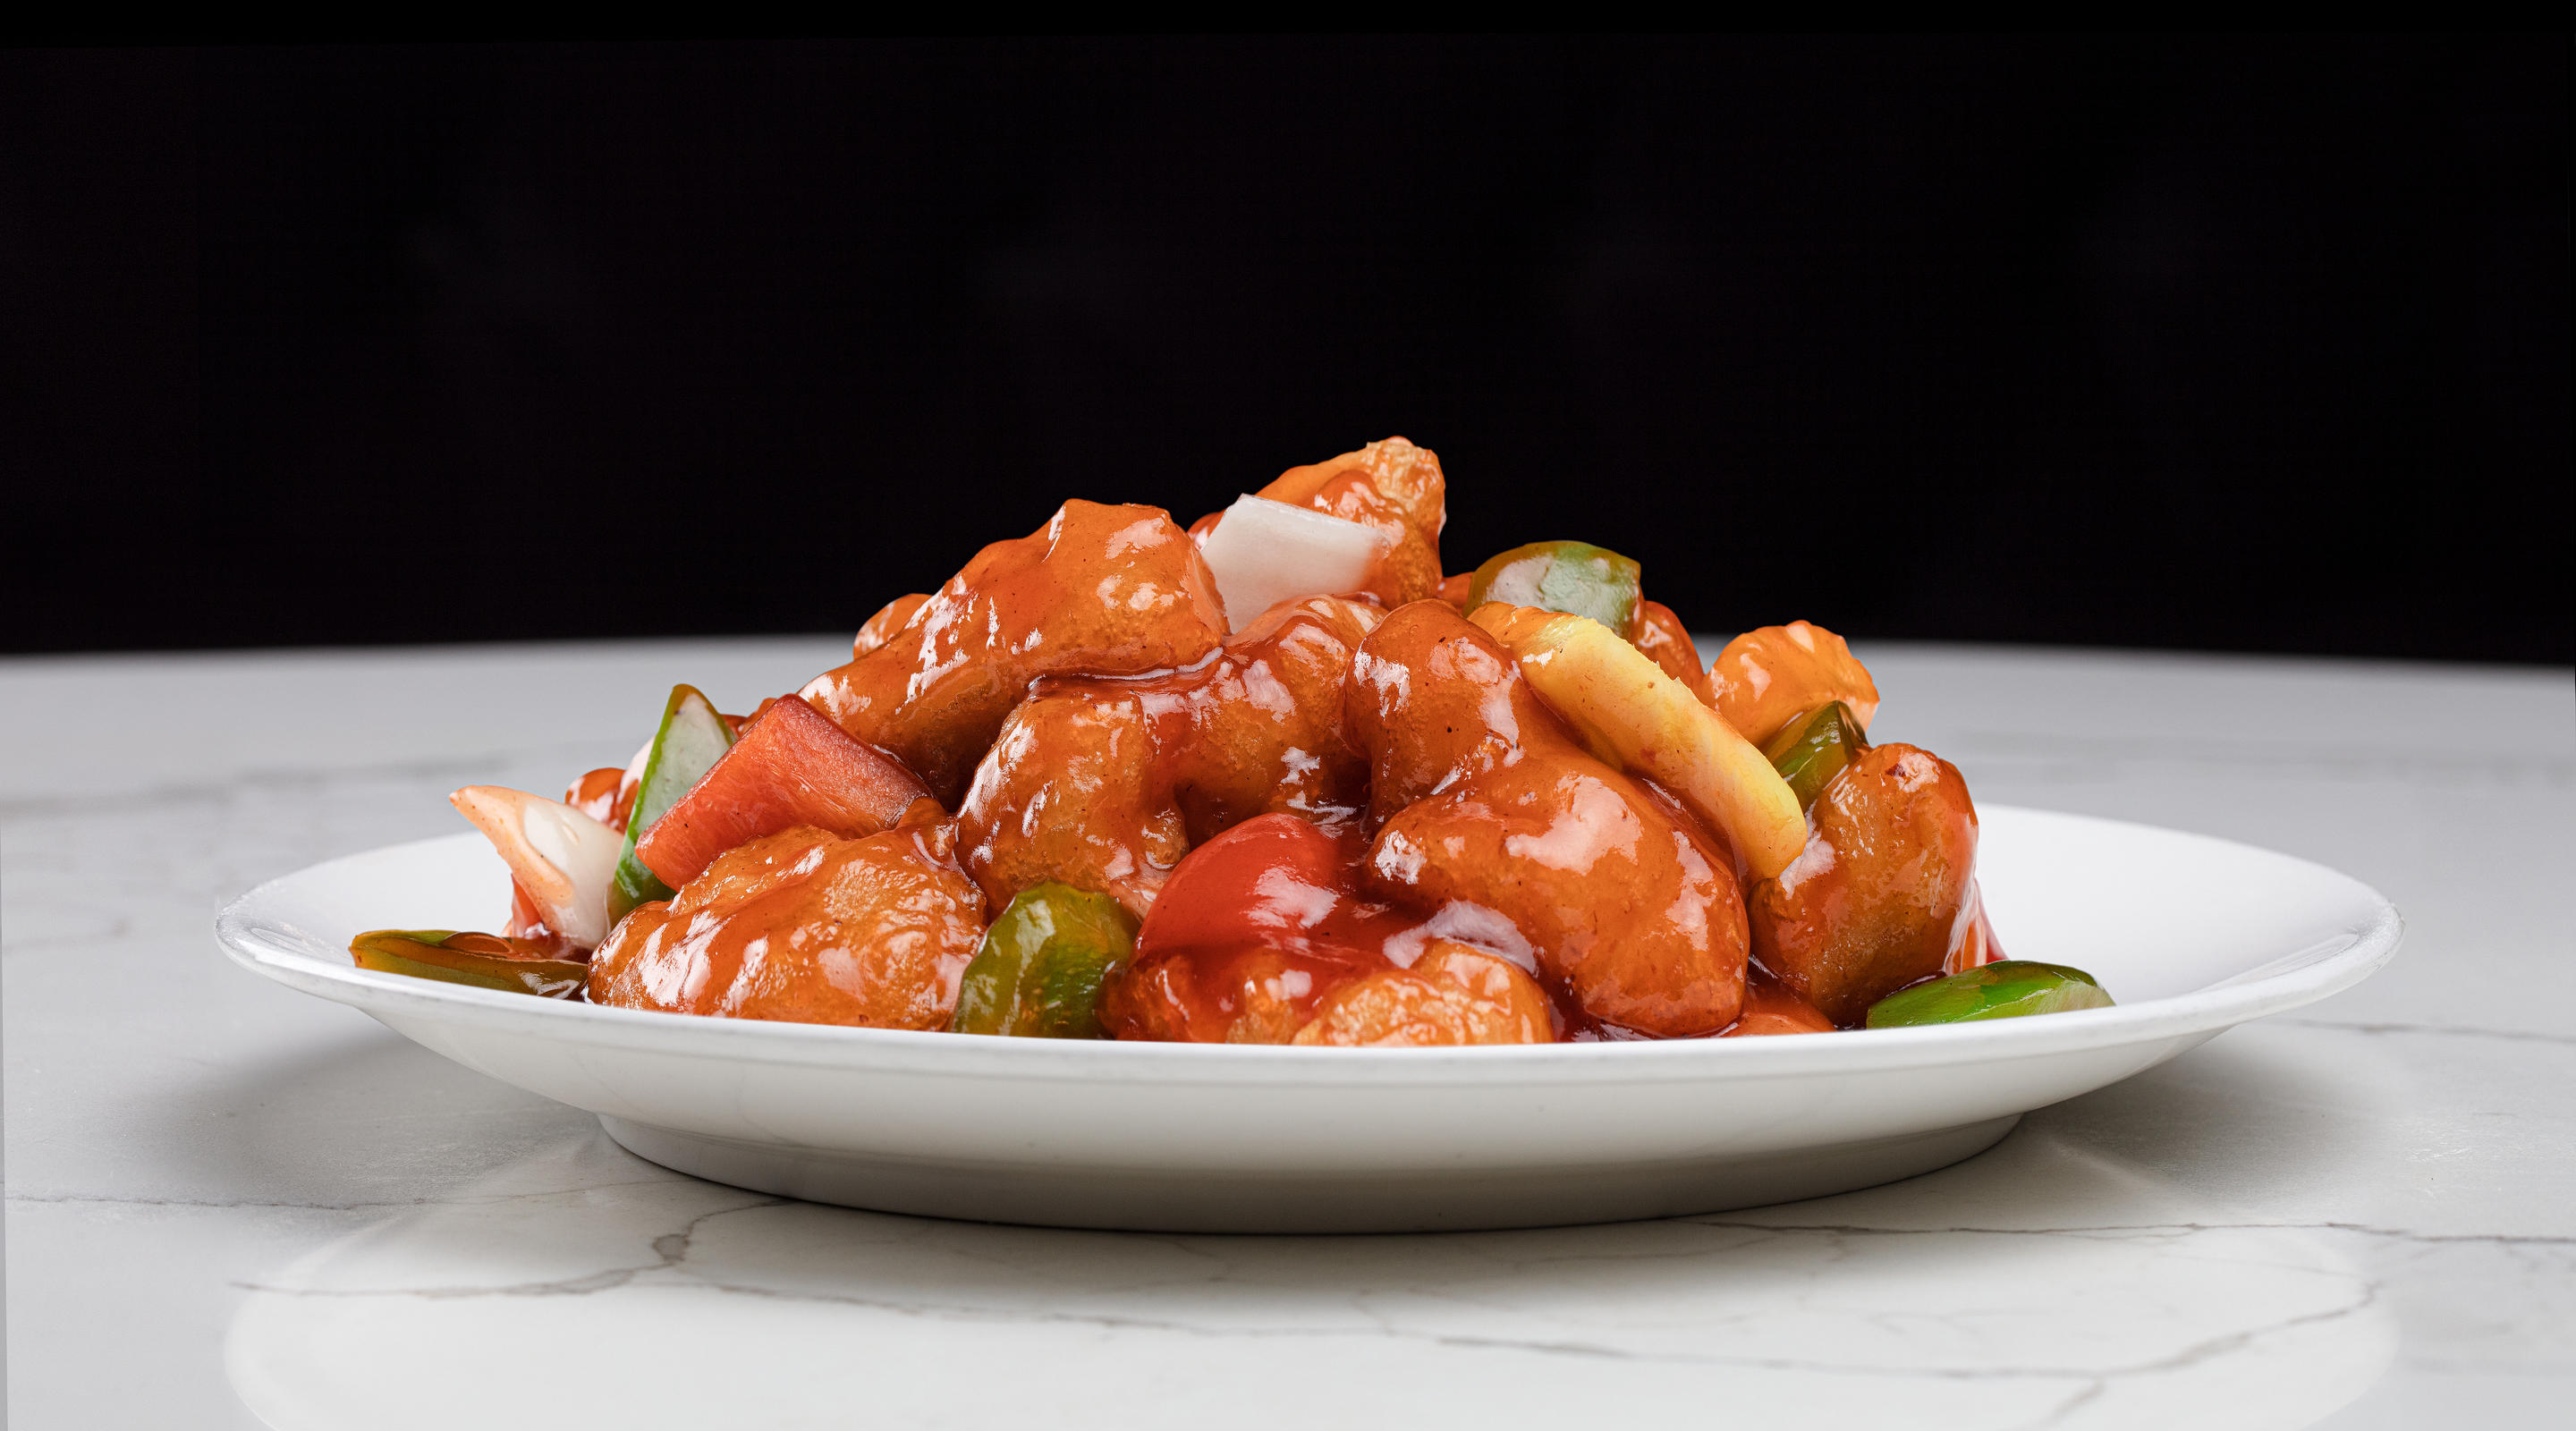 A plate of sweet and sour chicken from Grand Wok.